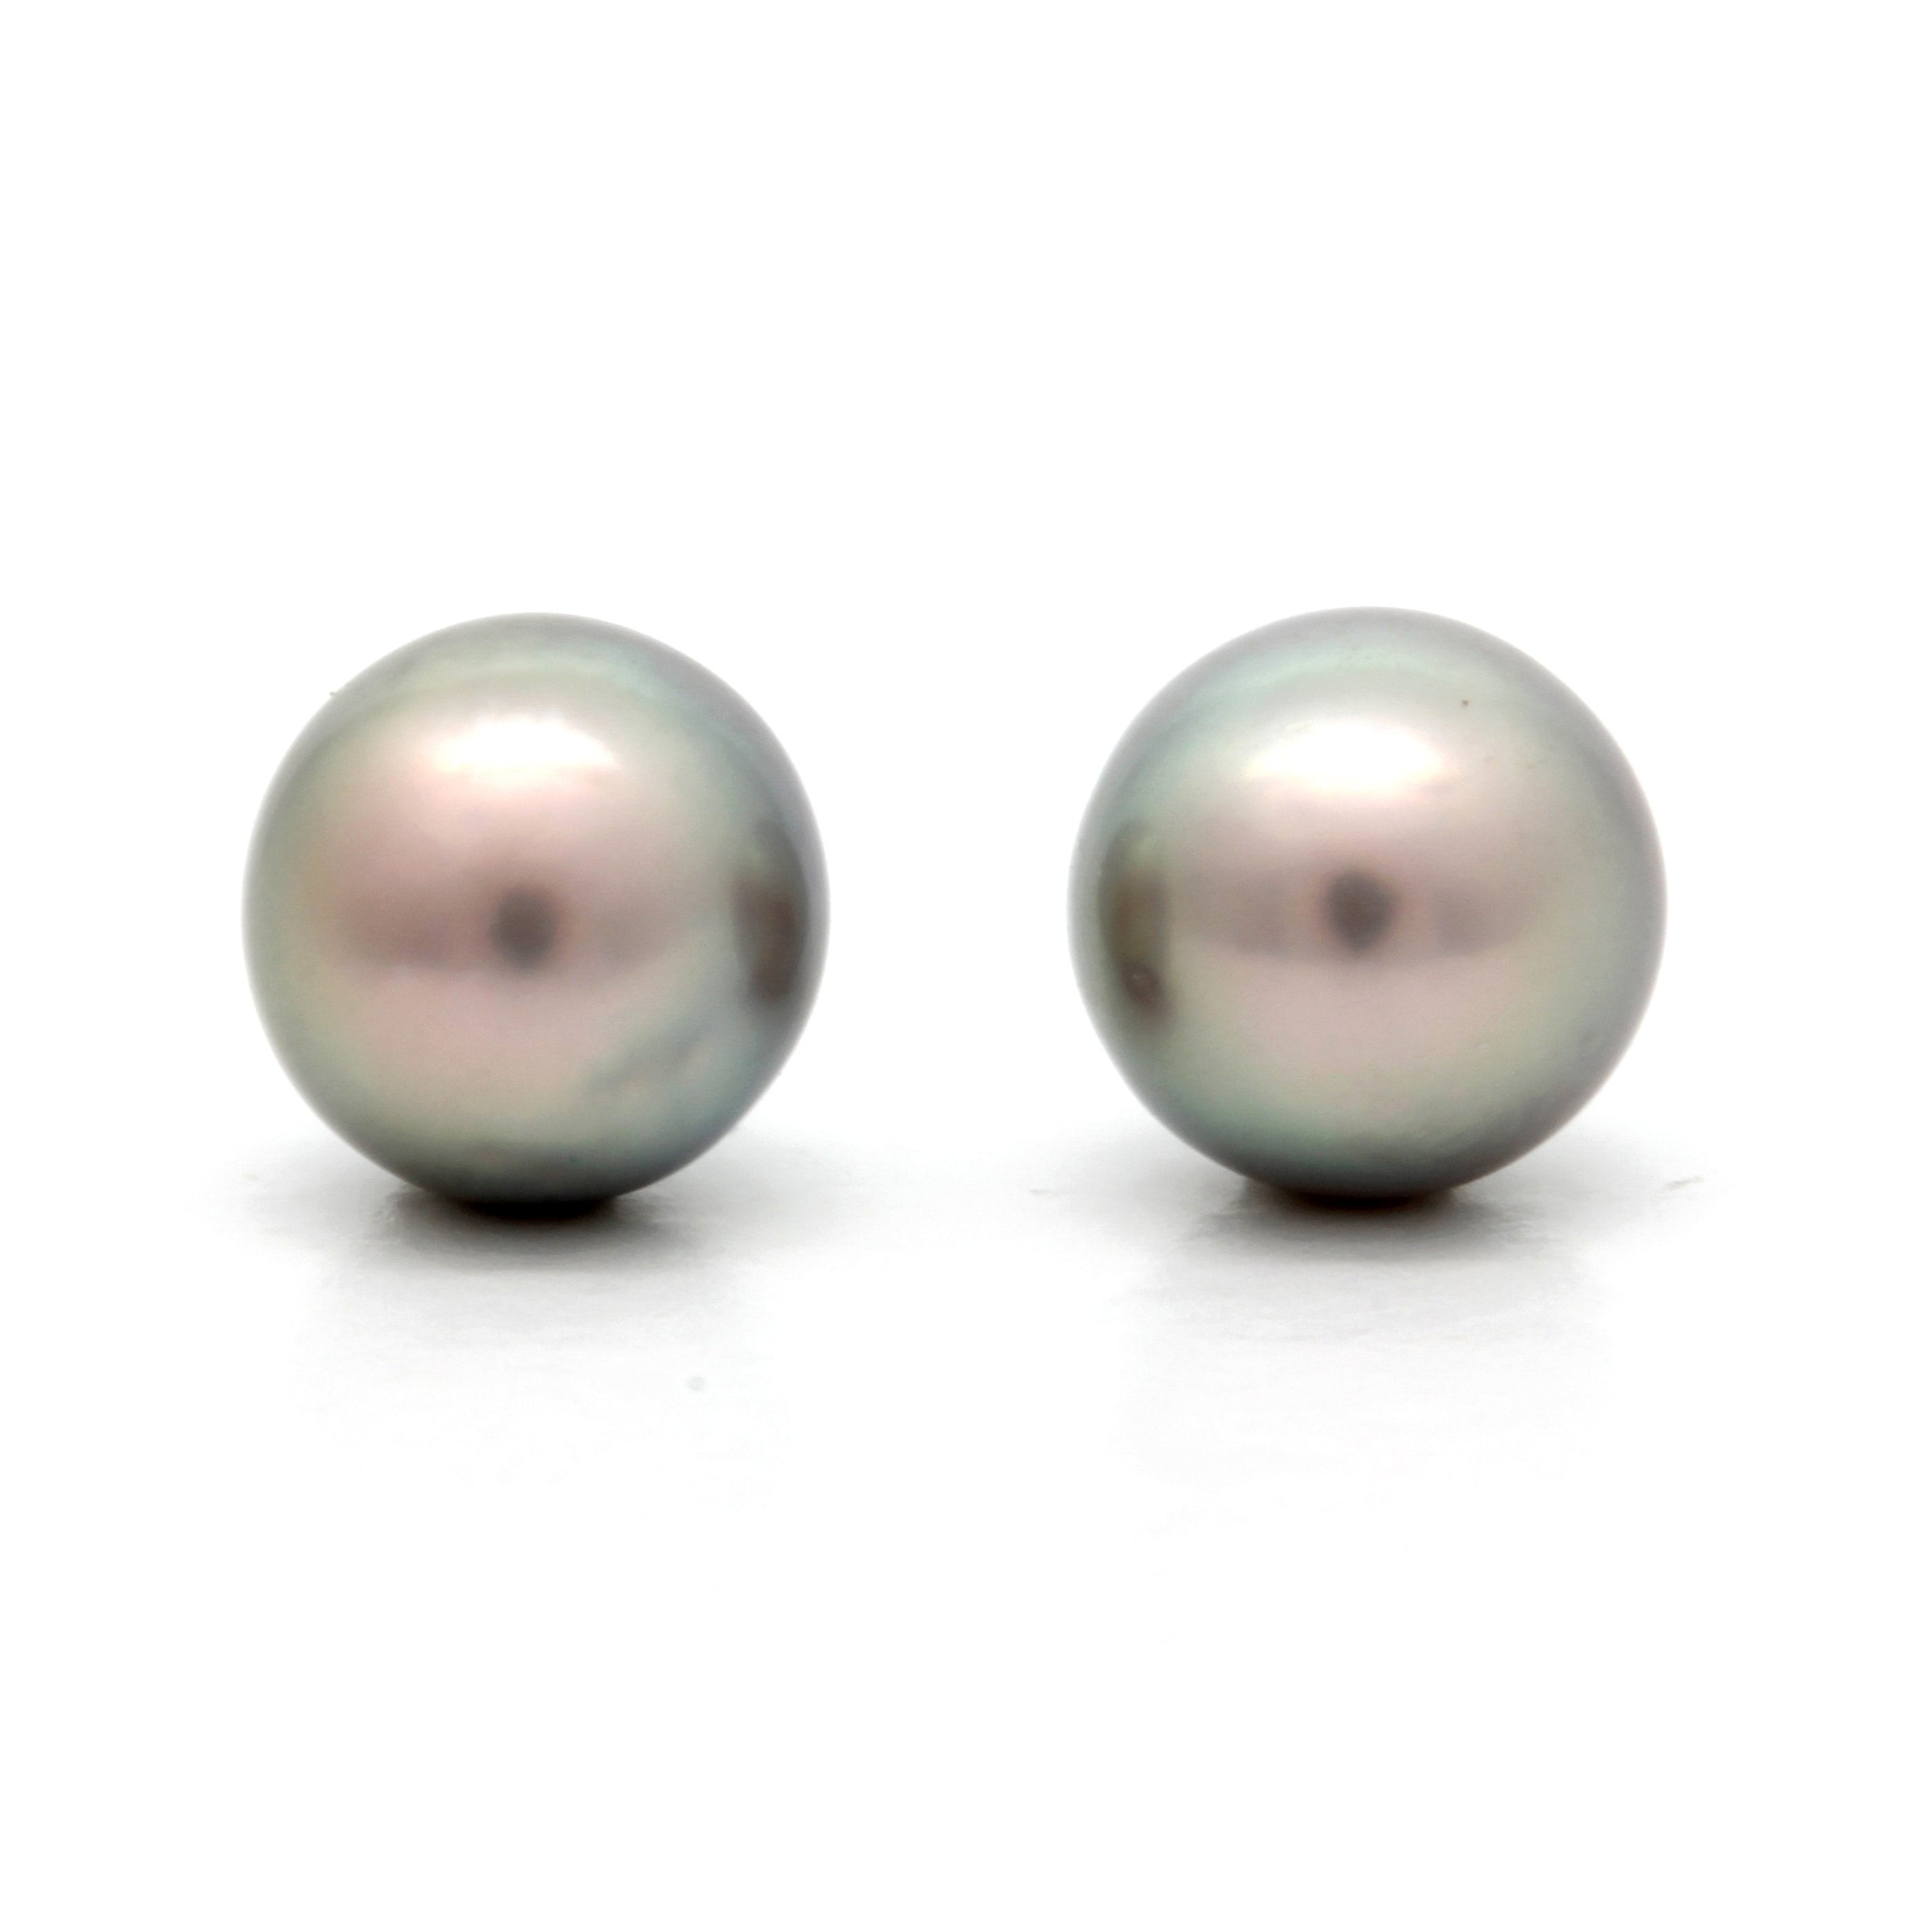 Pair of 9.5 mm Baroque Cortez Pearls